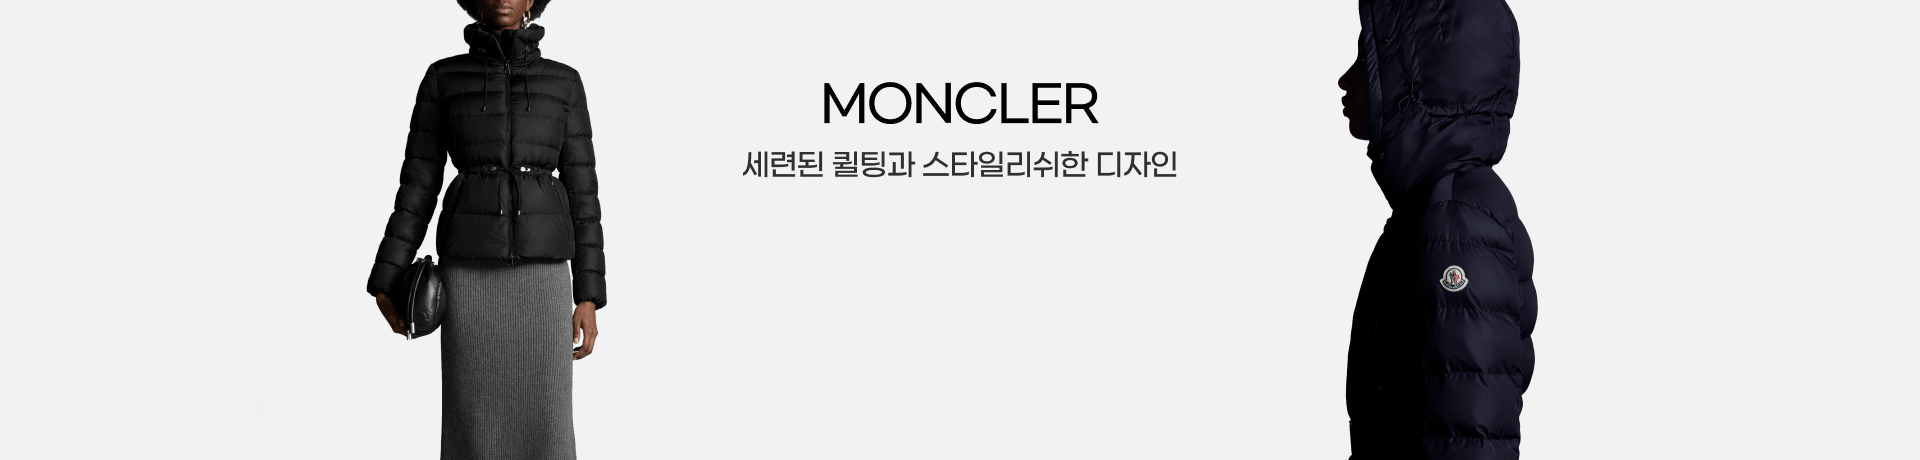 211018_sk_moncler_pc_f2f2f2